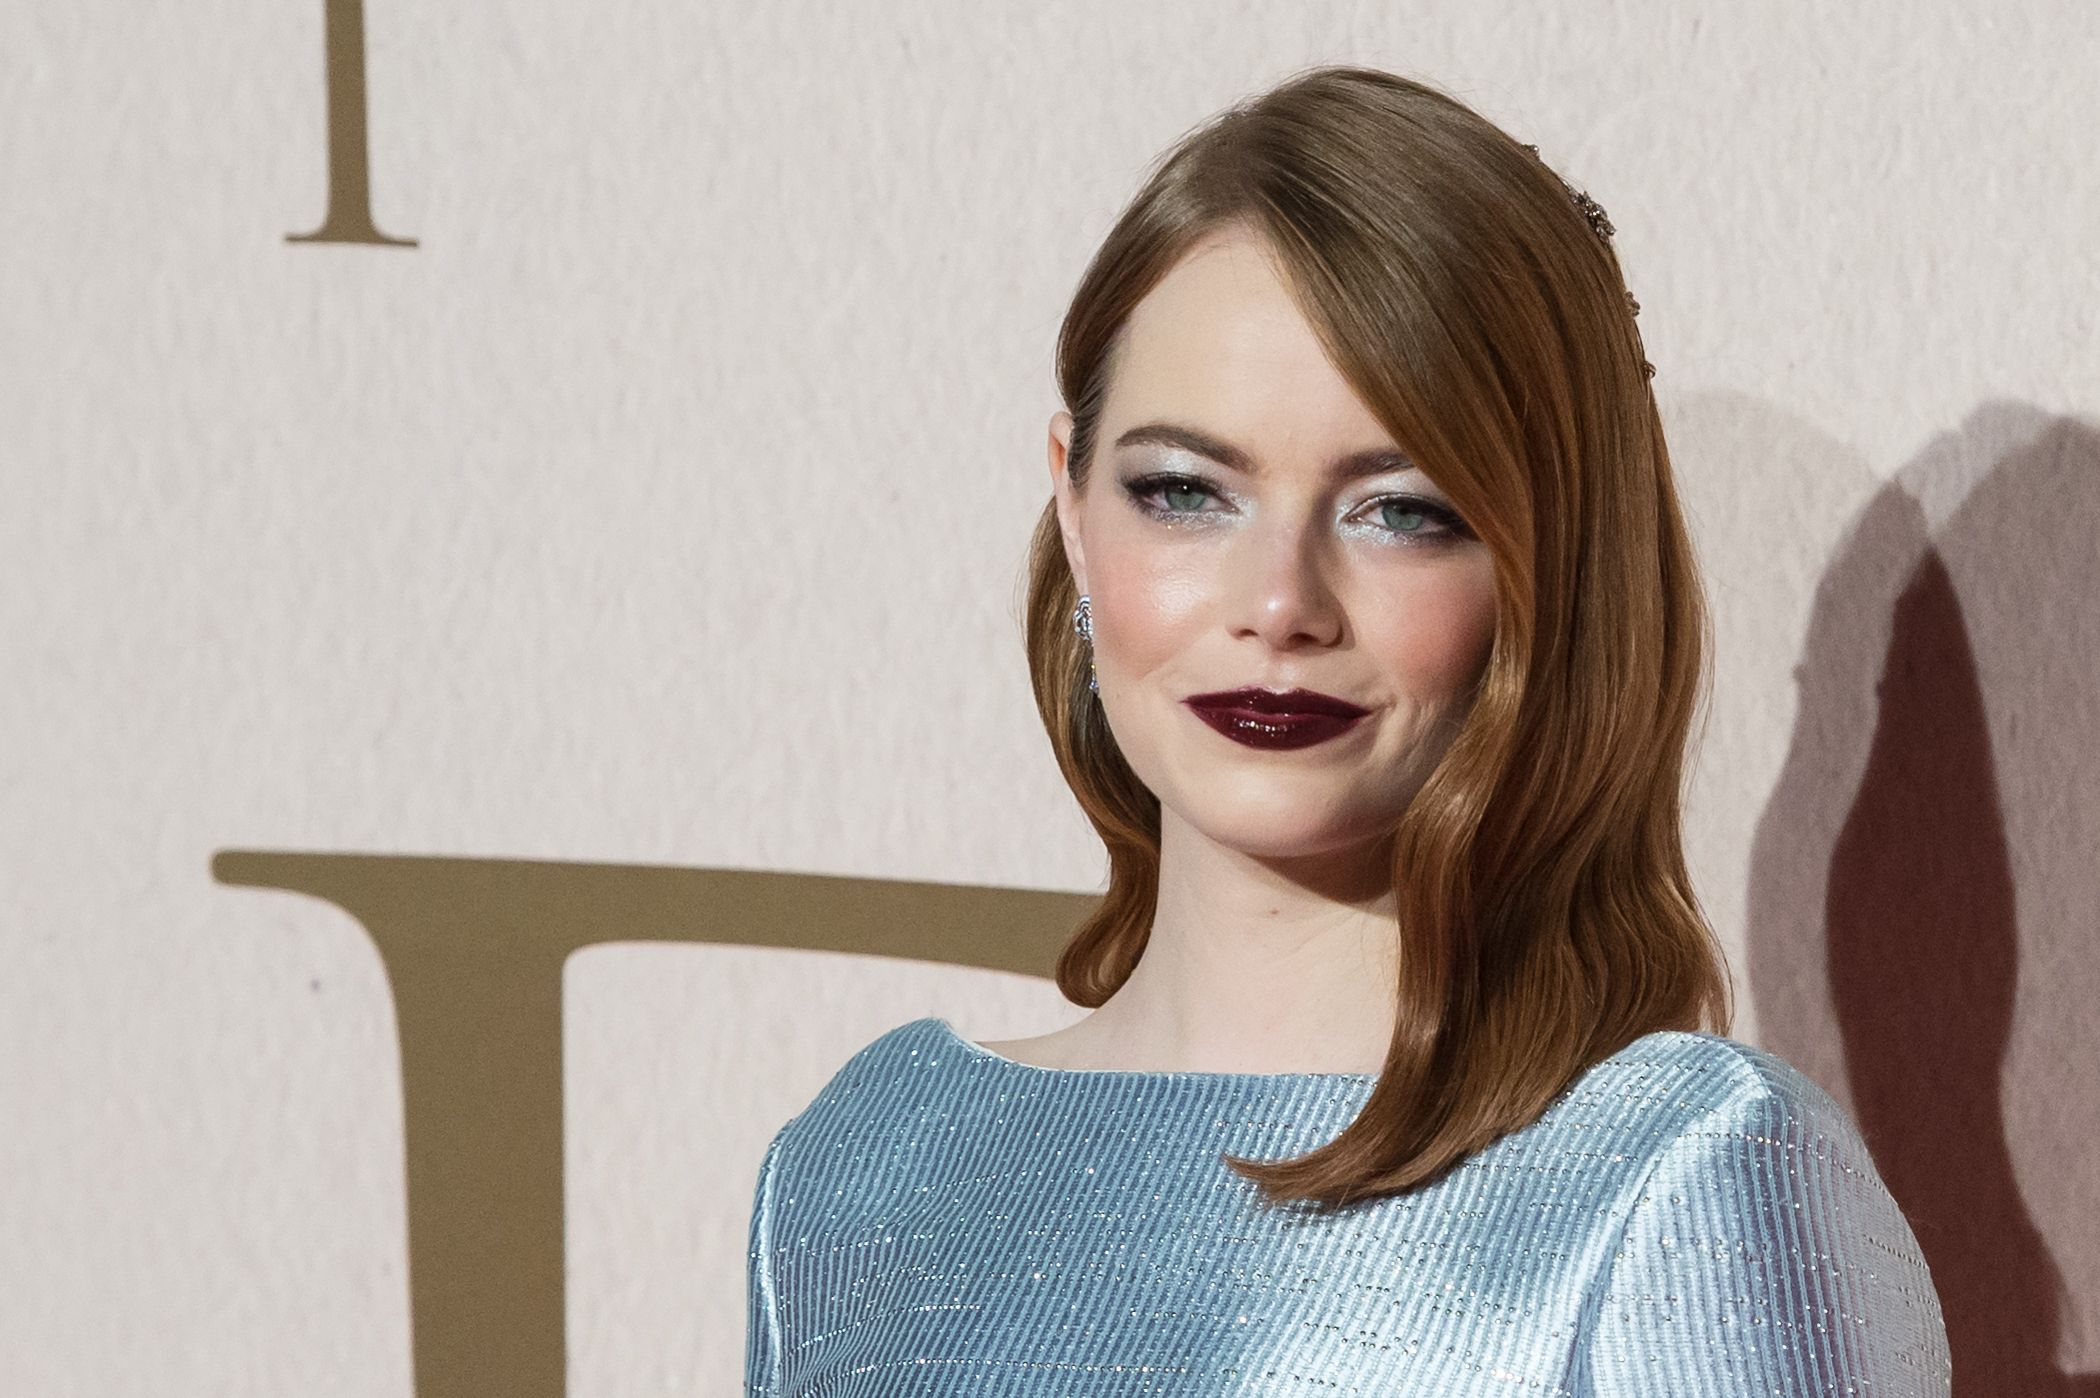 Emma Stones Dark Lipstick and Metallic Eyeshadow Is Our Favorite Fall Beauty Look